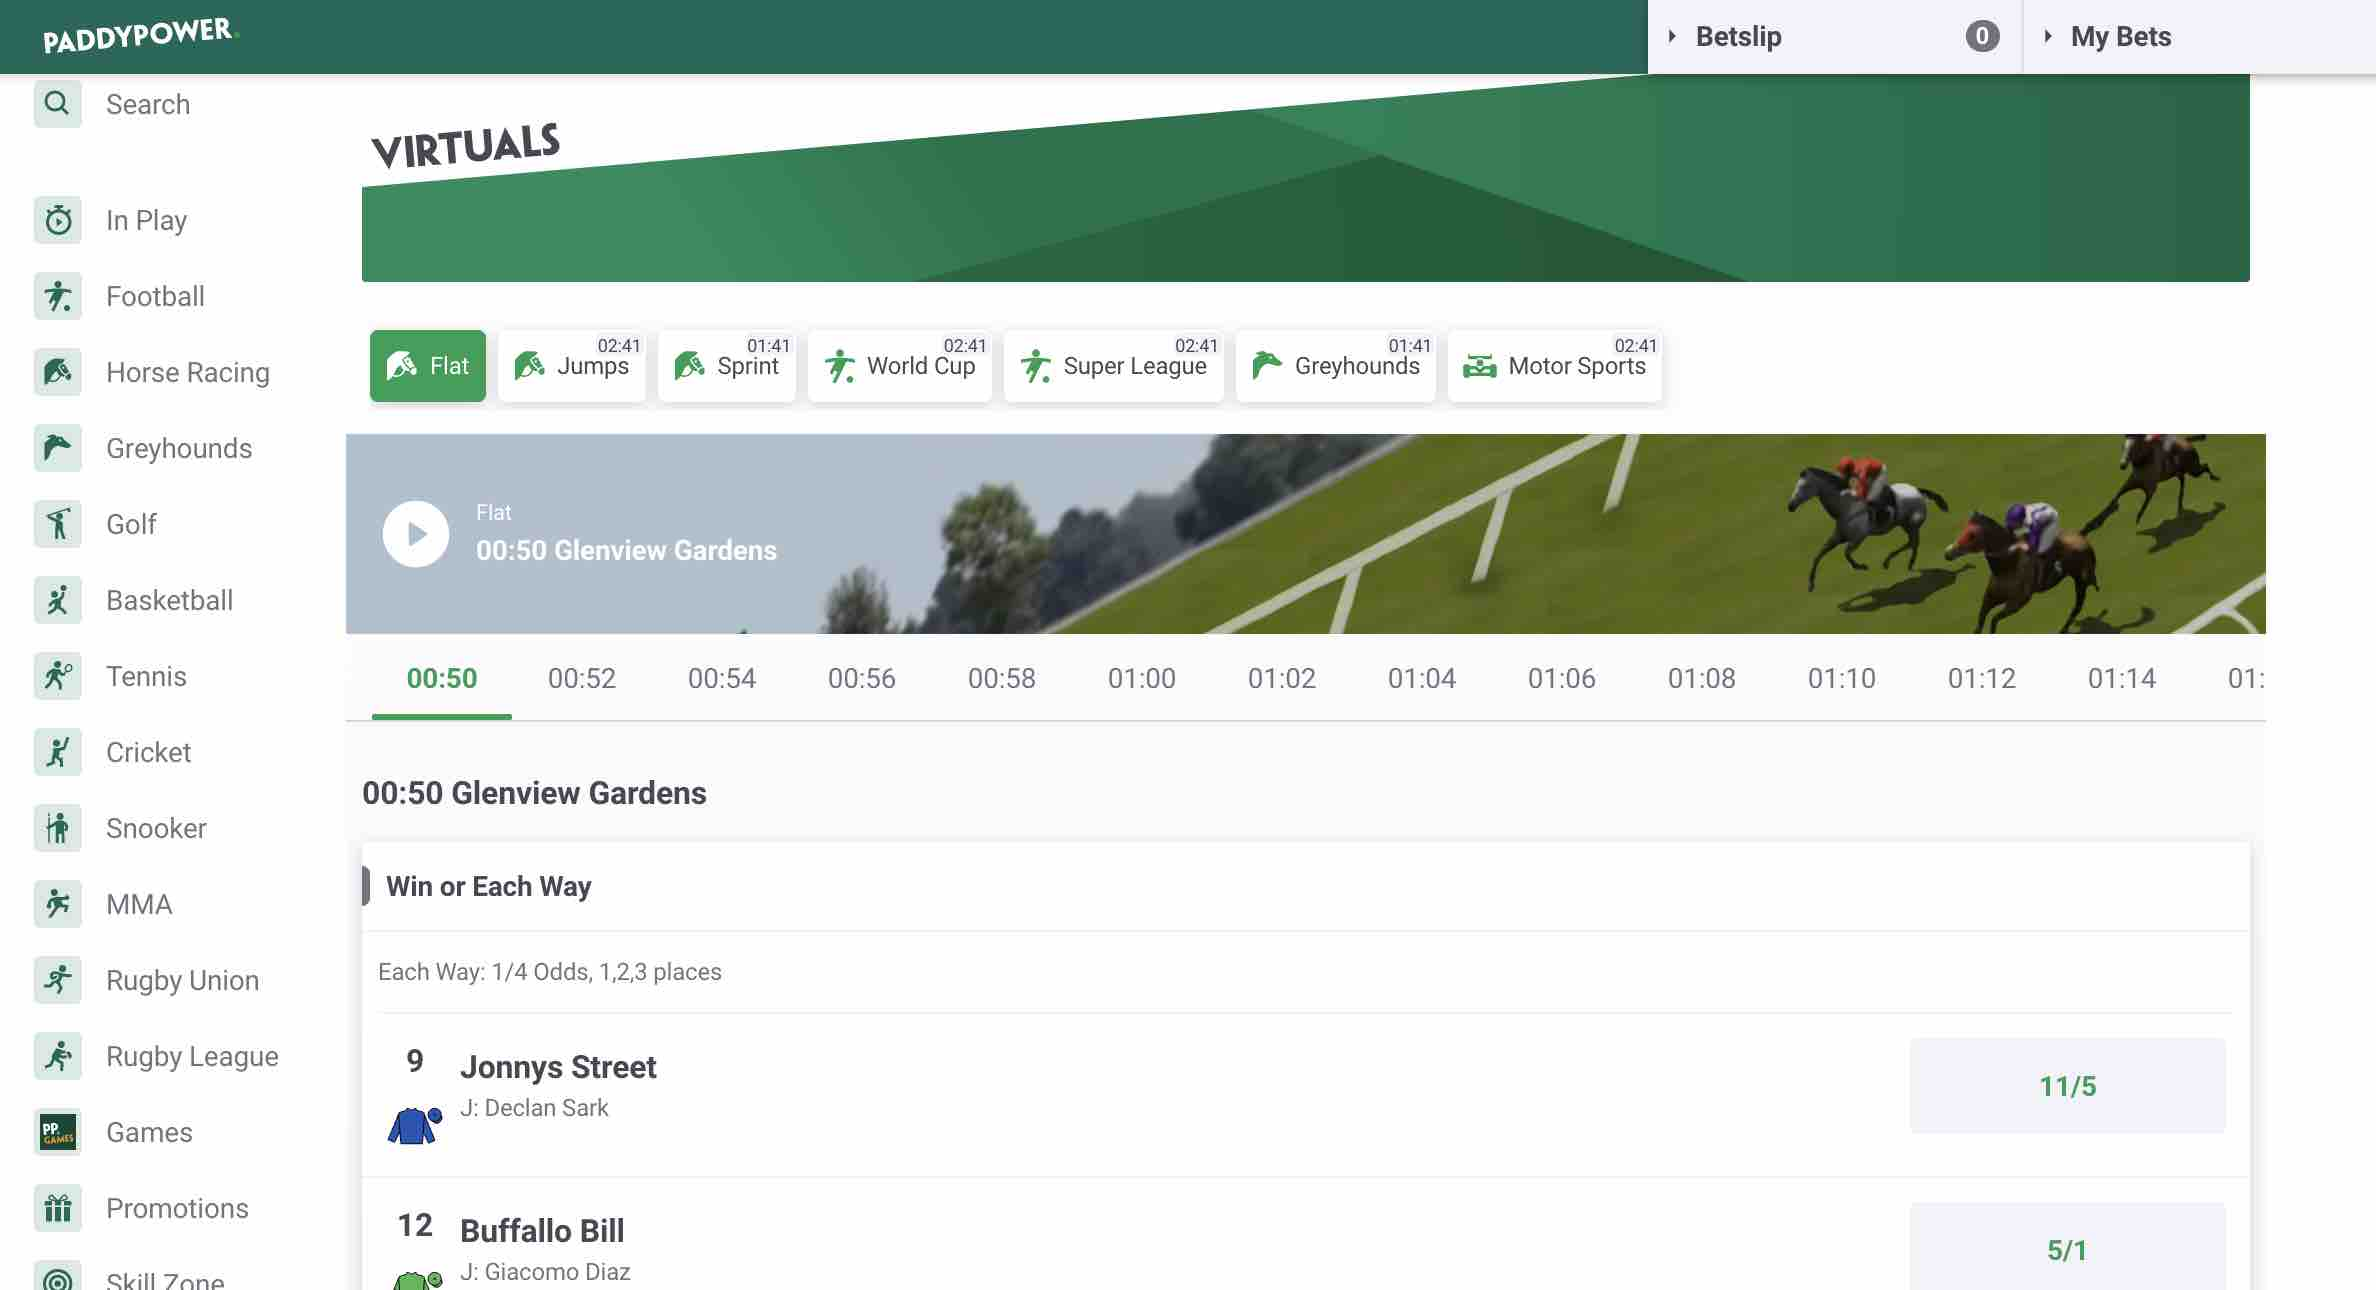 Paddy Power Casino and Sports